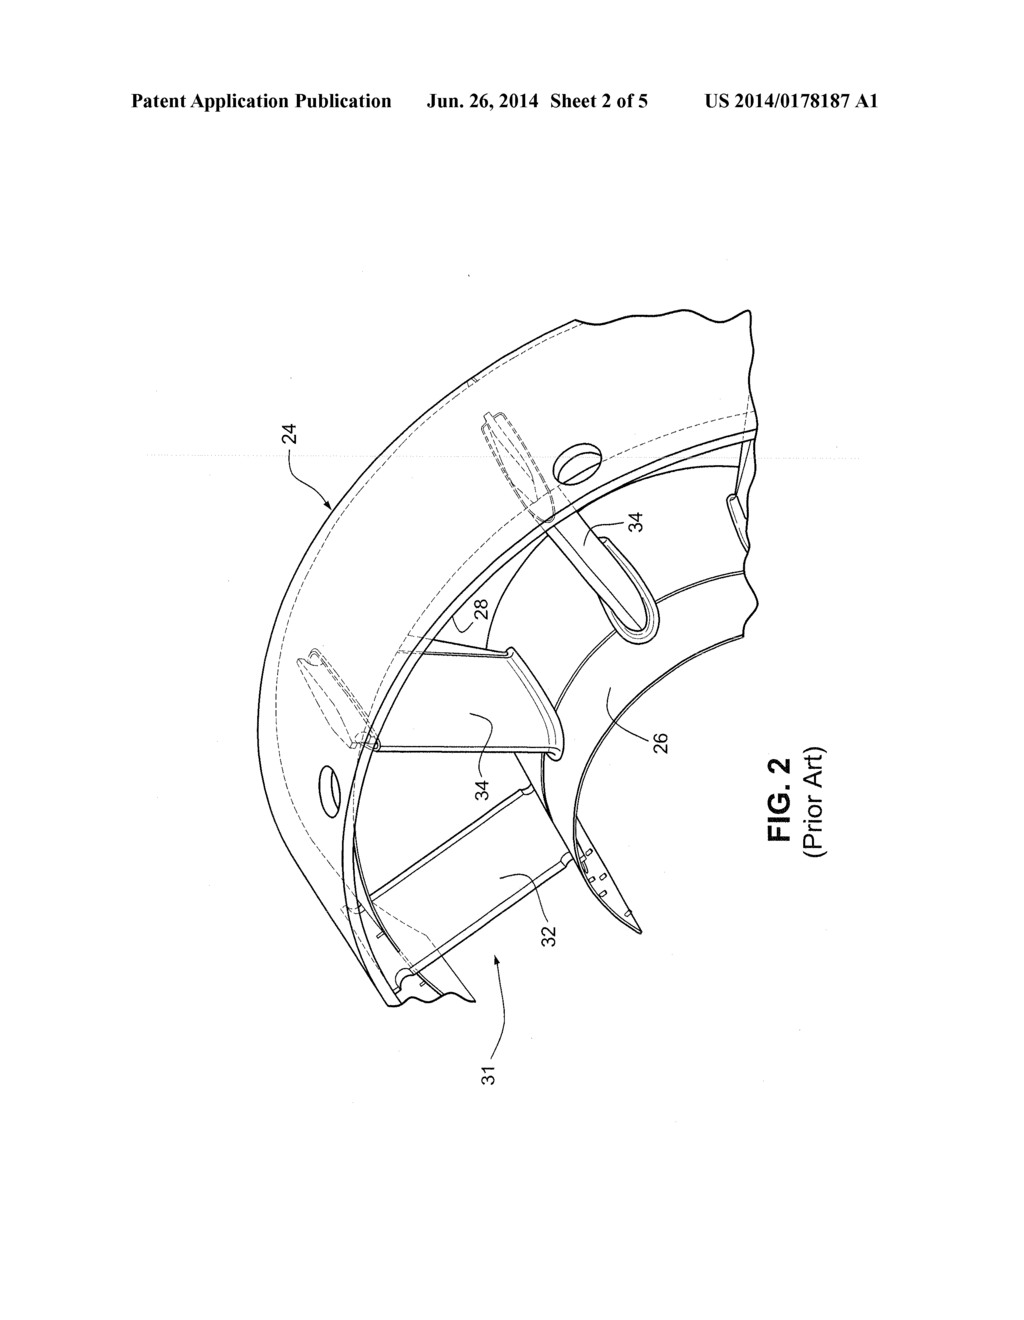 STAGGERED DOUBLE ROW, SLOTTED AIRFOIL DESIGN FOR GAS TURBINE